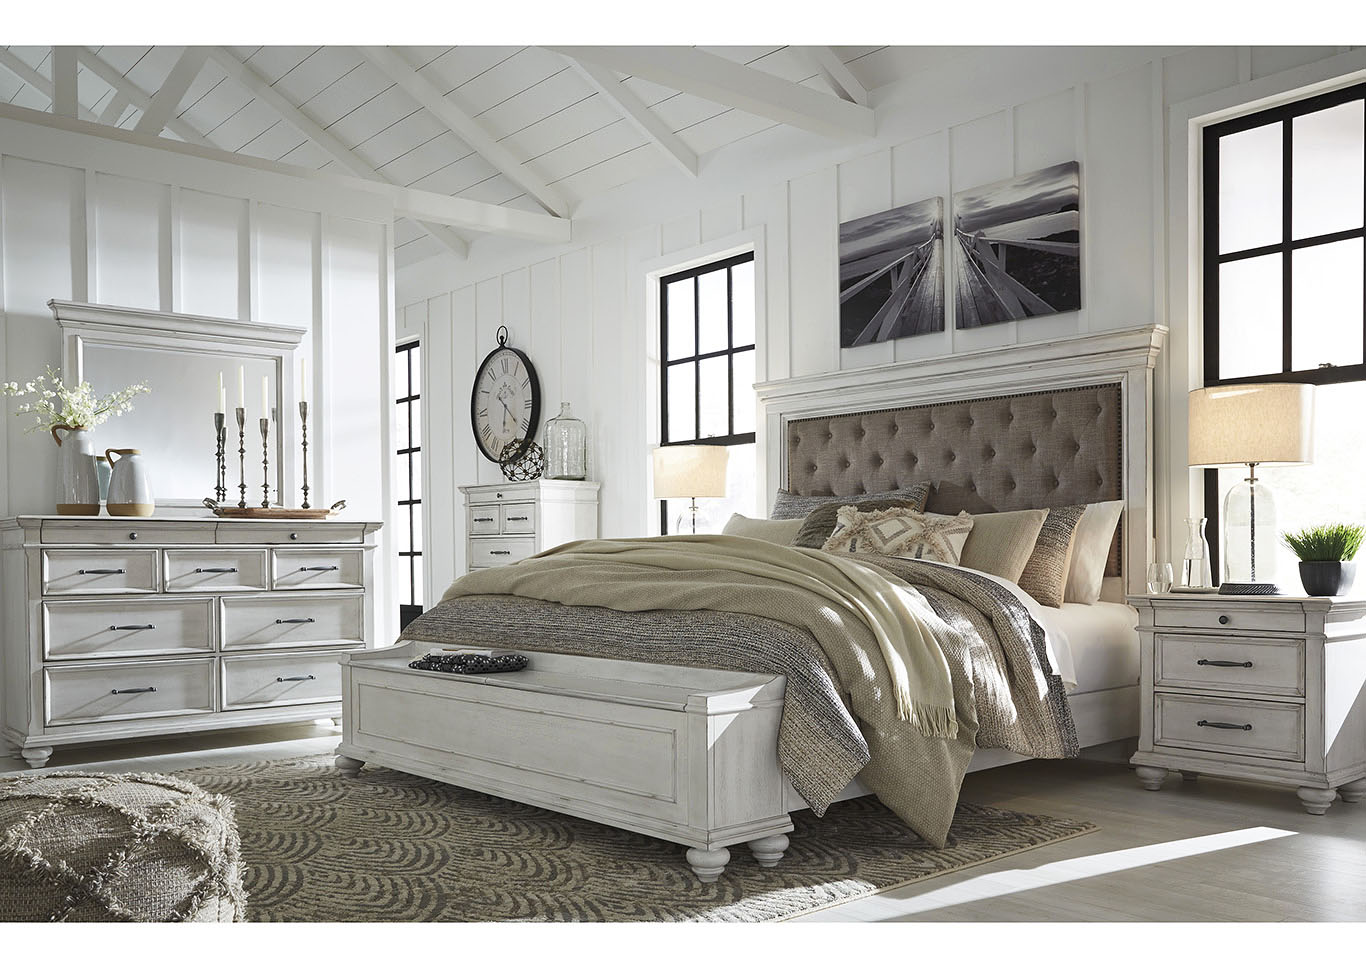 Kanwyn Whitewash California King Upholstered Storage Bed w/Dresser and Mirror,Benchcraft